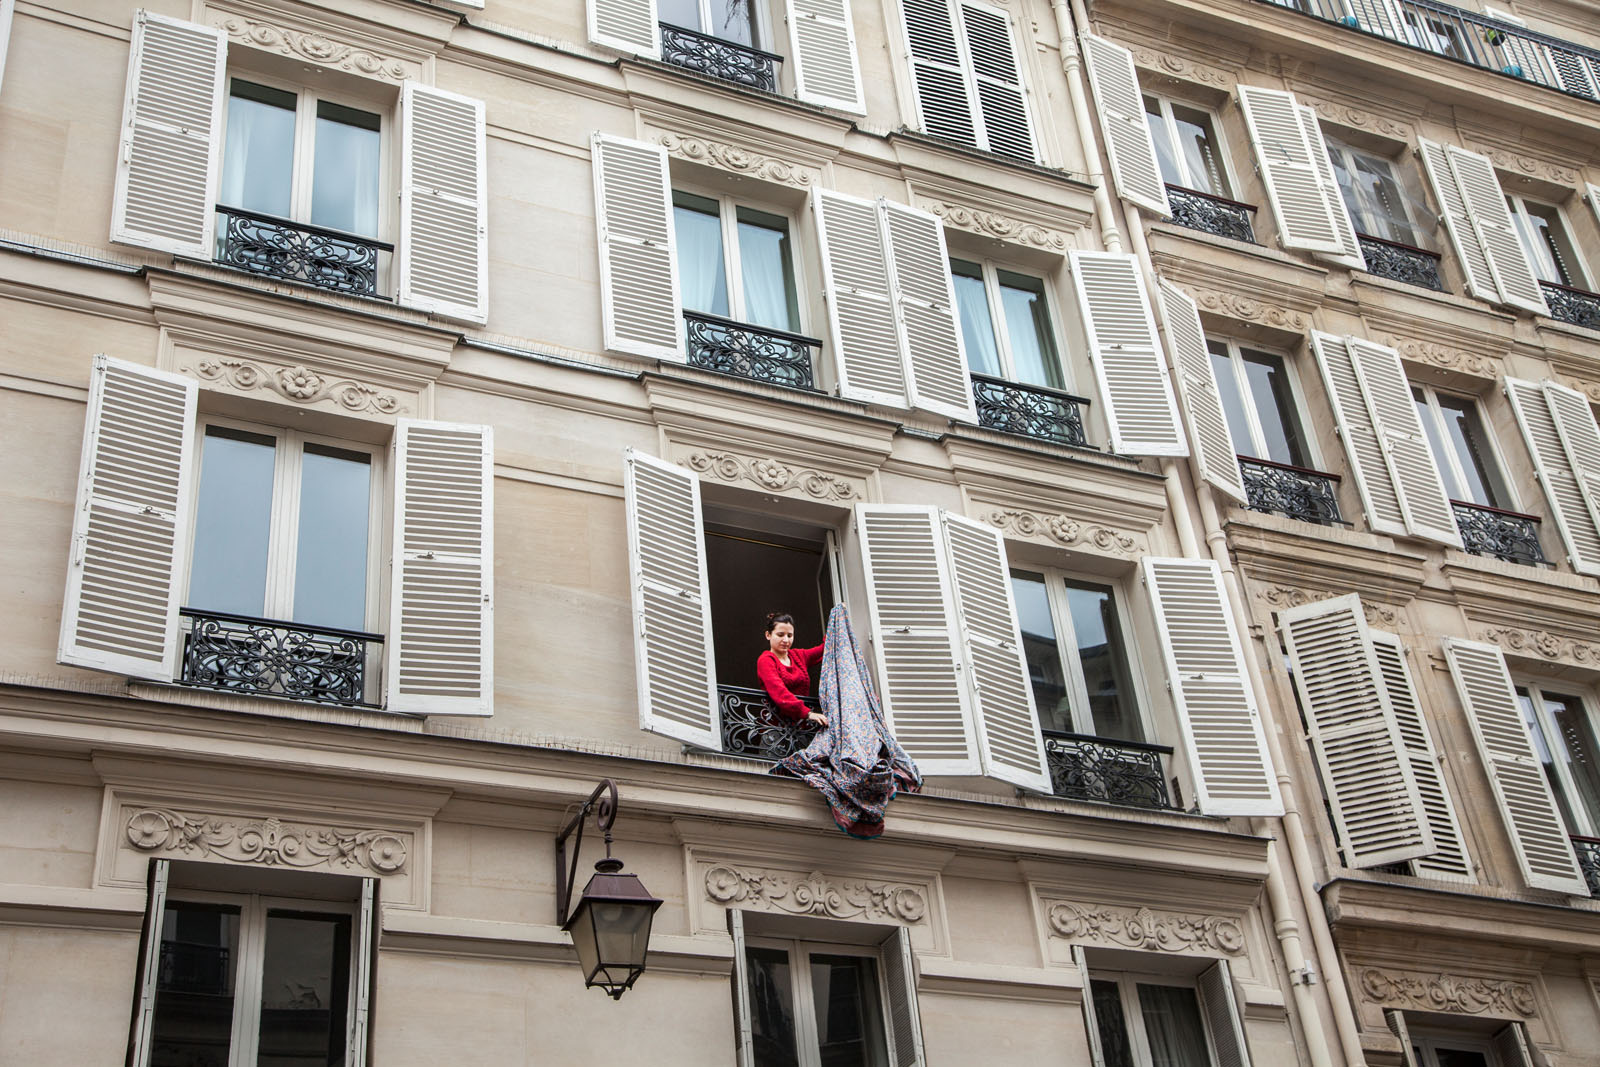 the rich architecture in the Marais district includes 18th-century buildings with wrought-iron railings